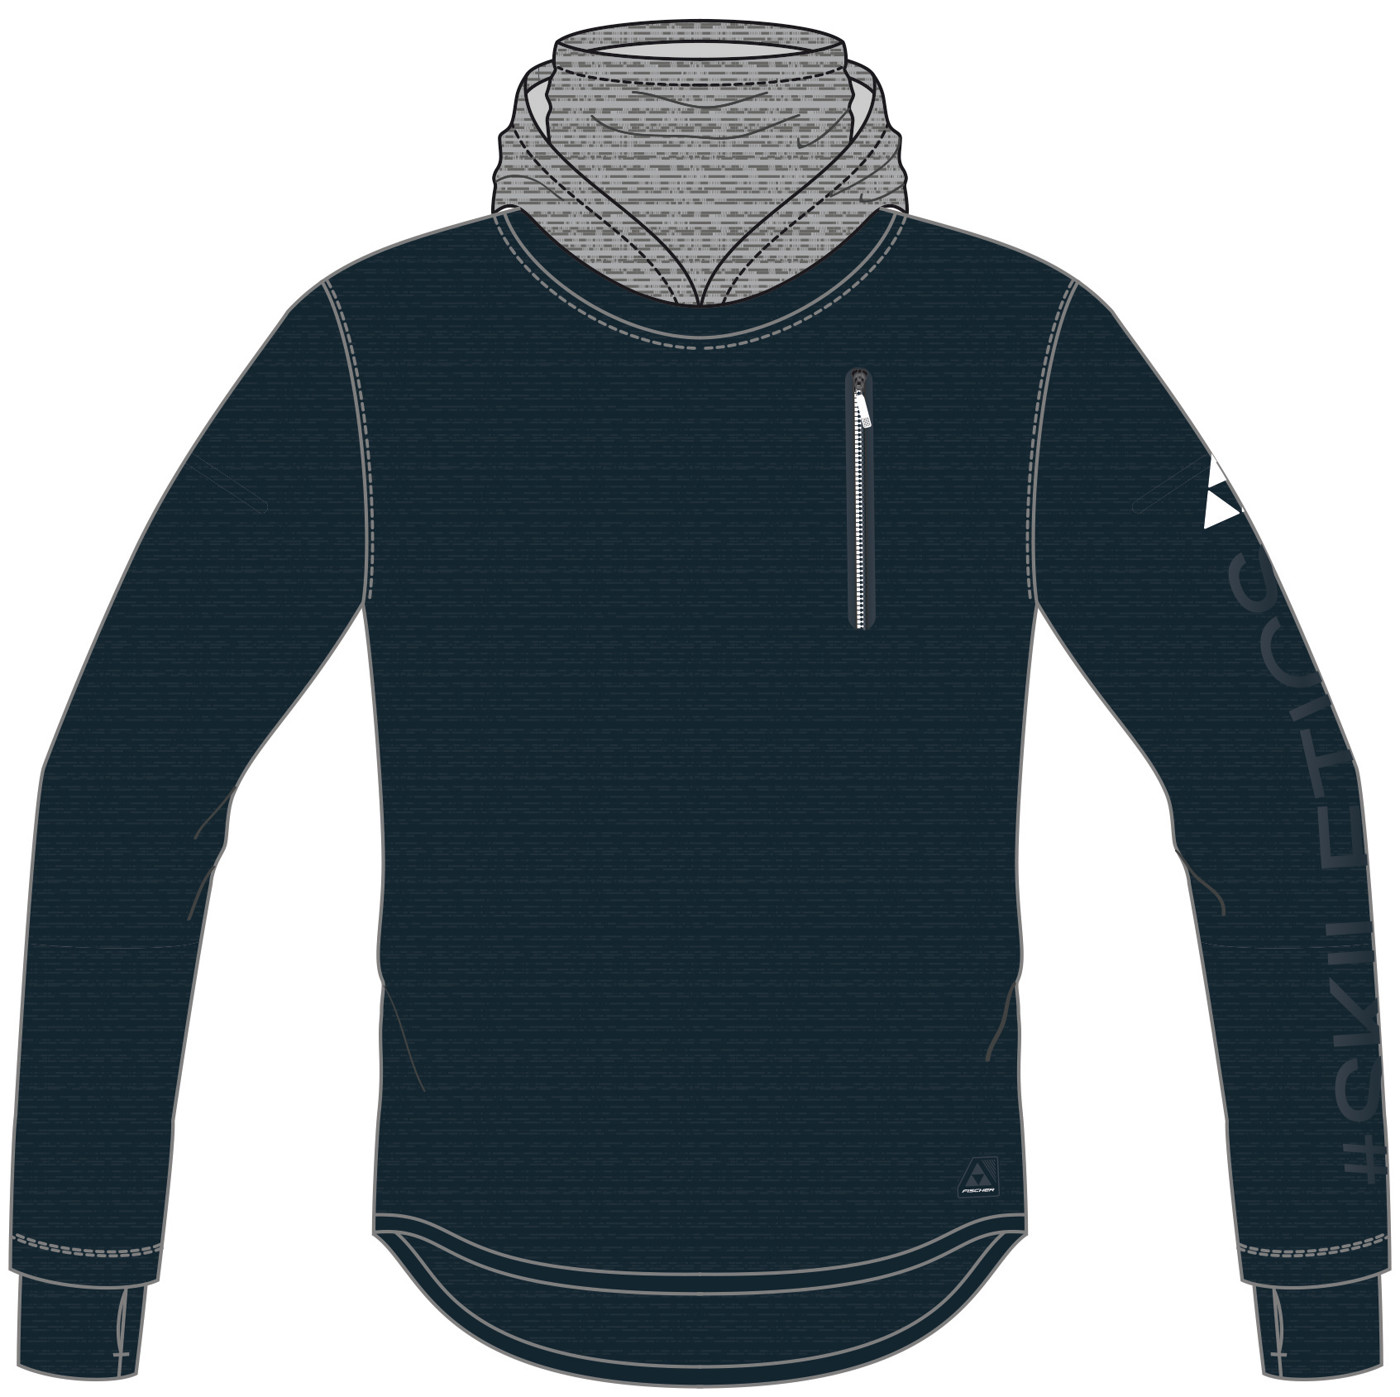 FISCHER SKILETICS HOODY SWEATER - Herren